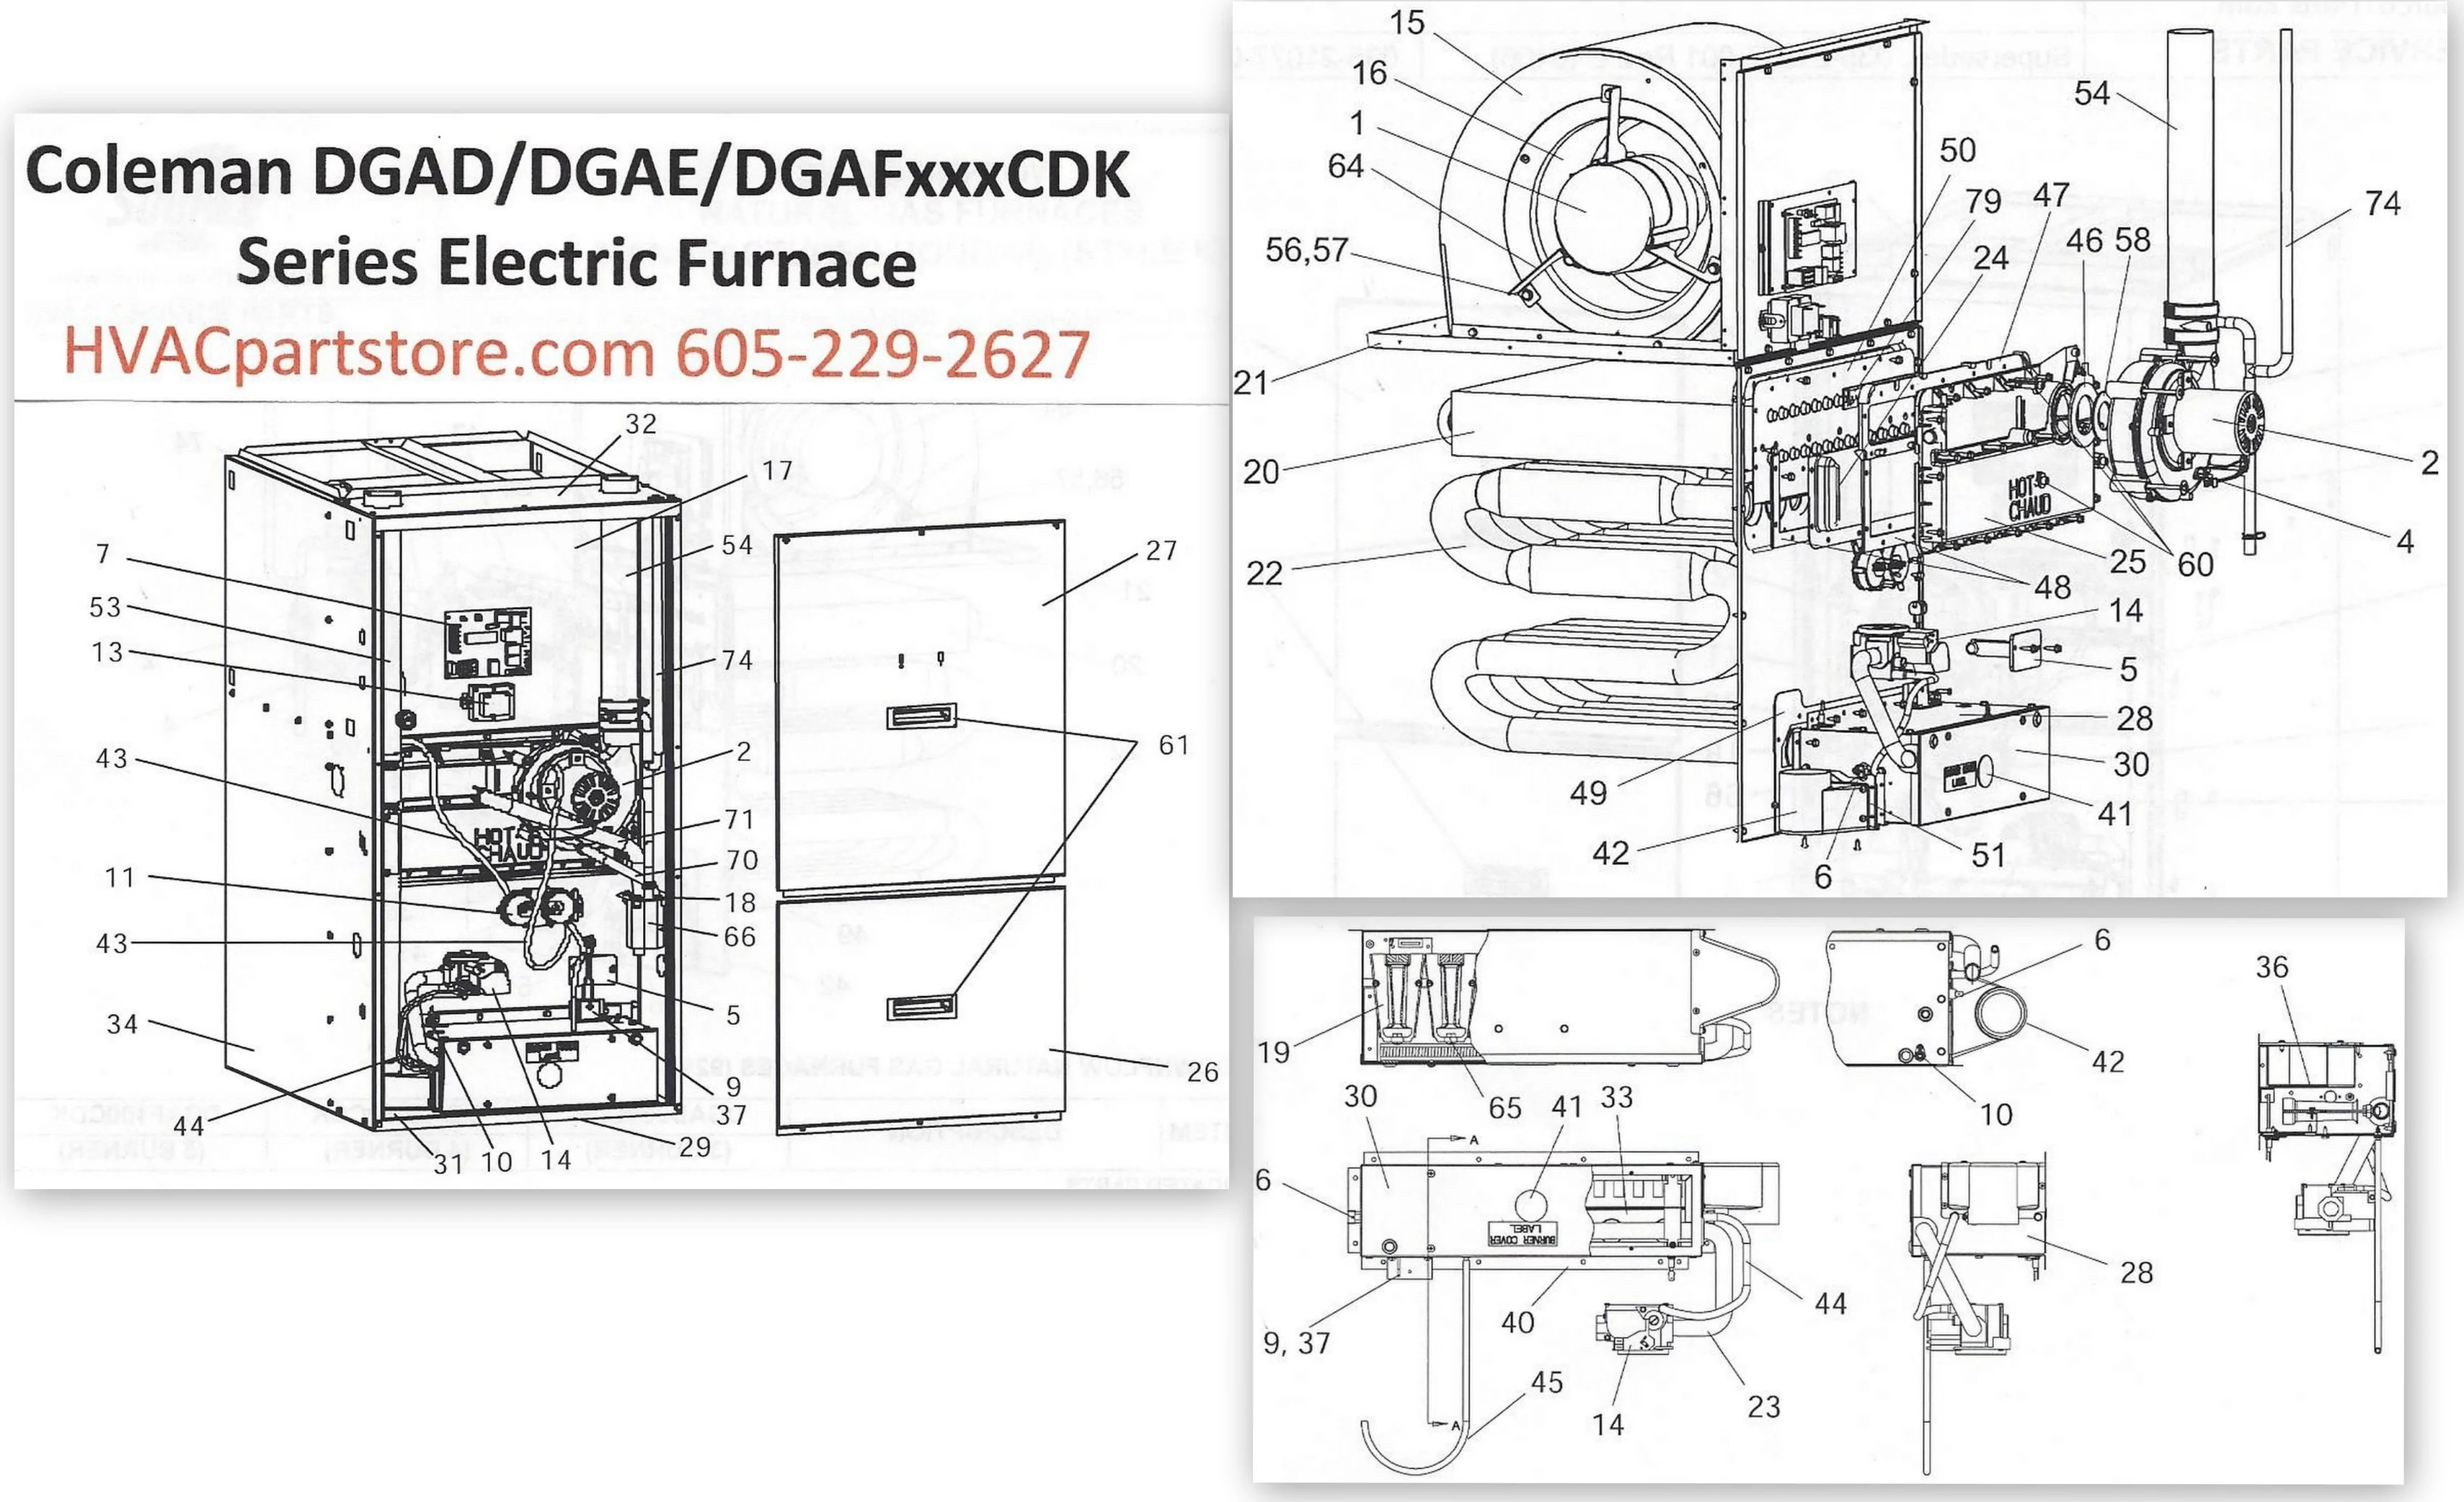 wiring diagram for nordyne electric furnace bix block dgad060cdk coleman gas parts – hvacpartstore